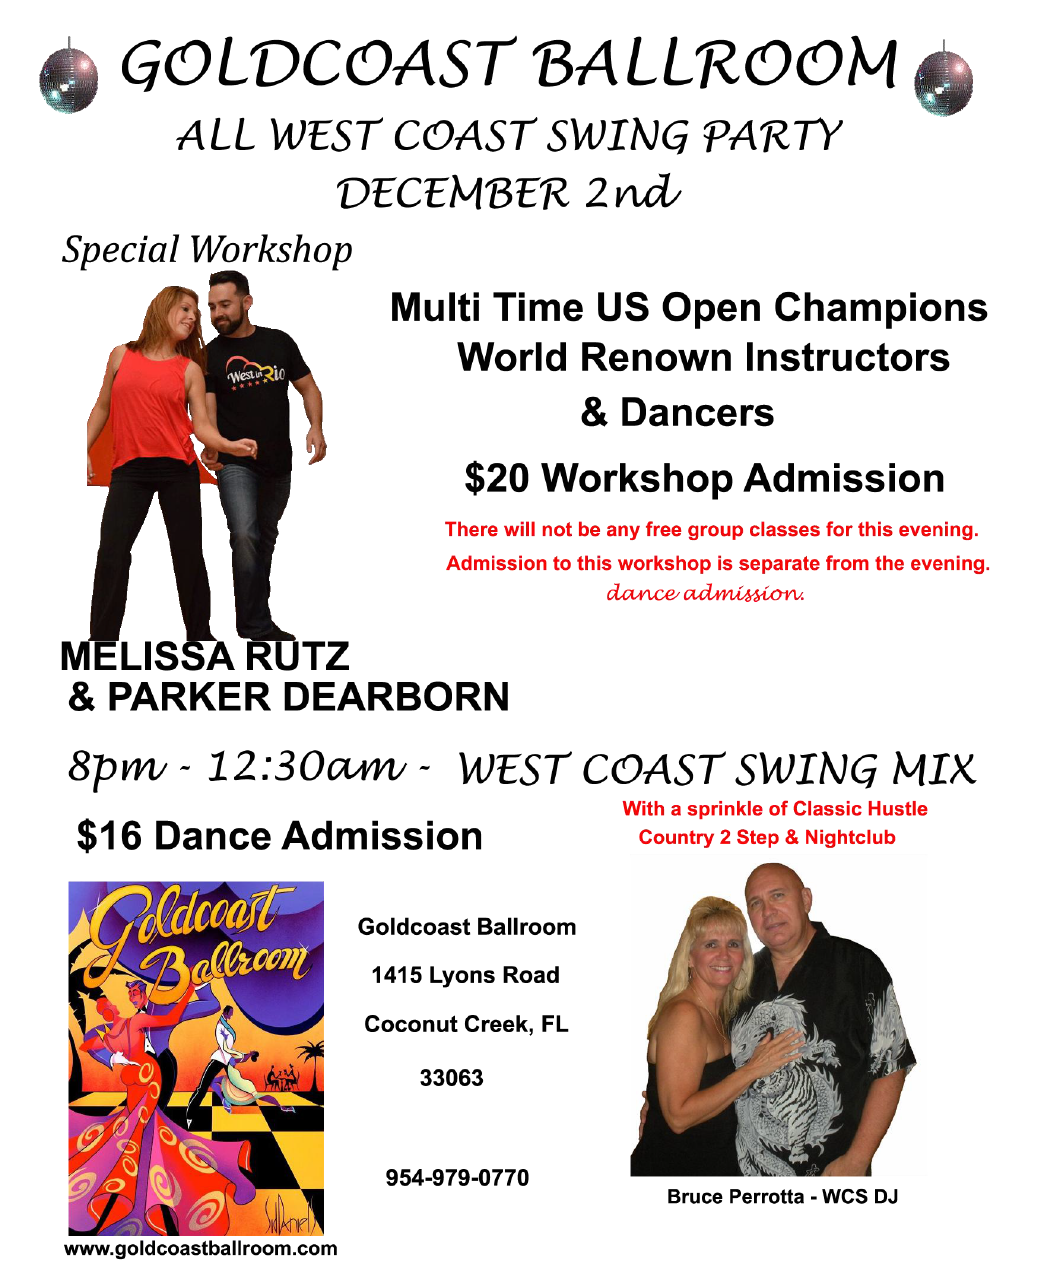 West Coast Swing Party - December 2, 2016 At Goldcoast Ballroom